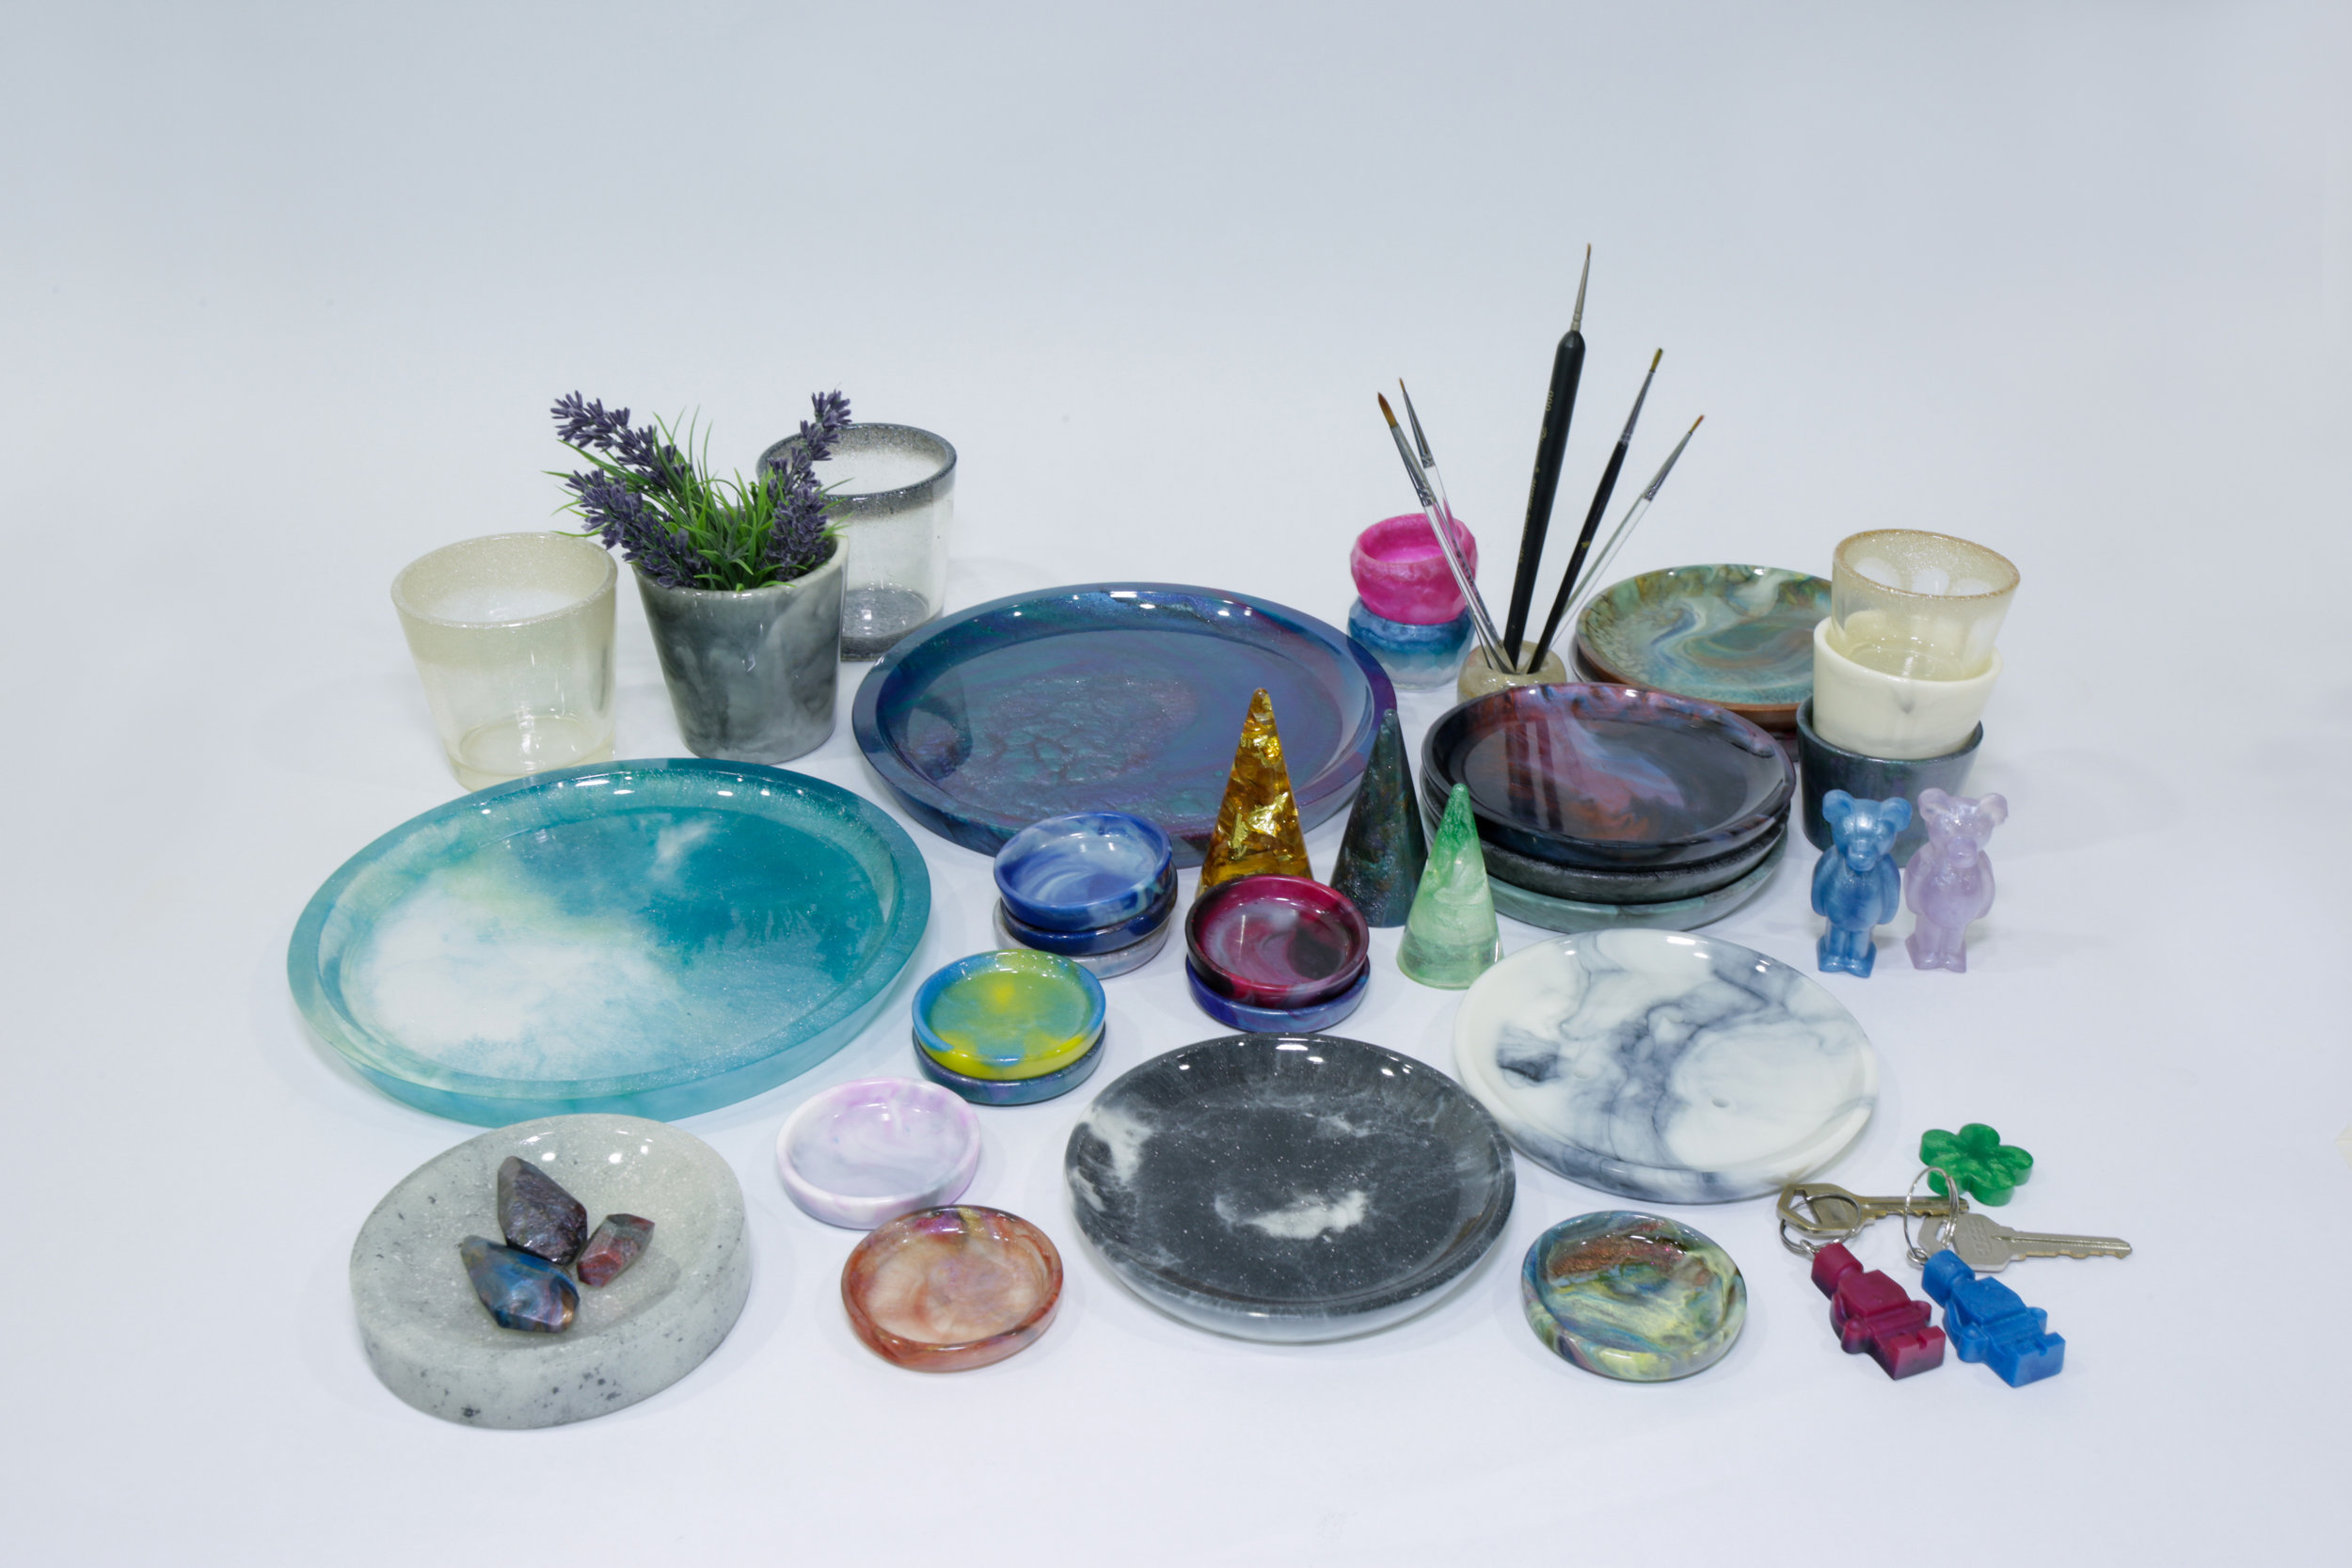 Resin Products including Plates, Bowls, etc